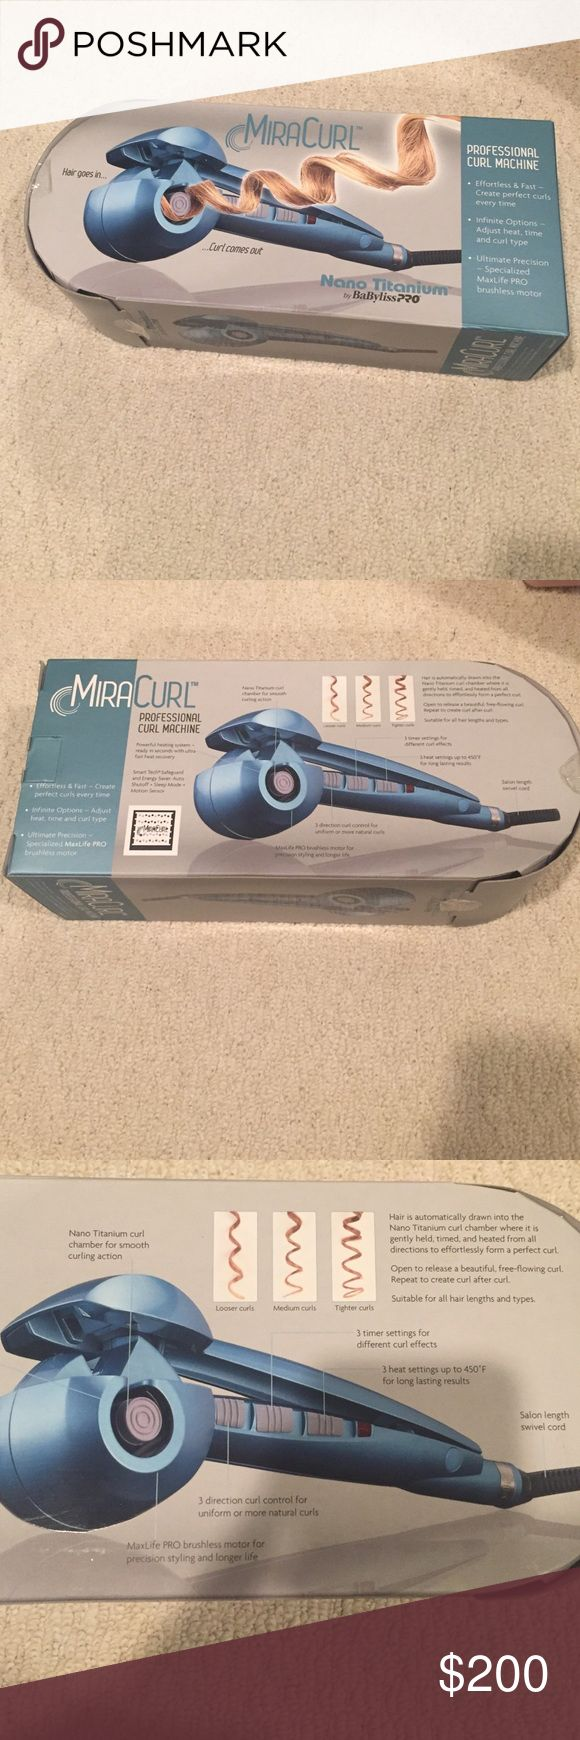 ‼️NWT MiraCurl Automatic Curler/Curling Iron‼️ NWT Automatic Curler! In perfect condition and just dying to be used. Box's stickers peeled off but product has never been used. OPEN TO OFFERS BaByliss Other